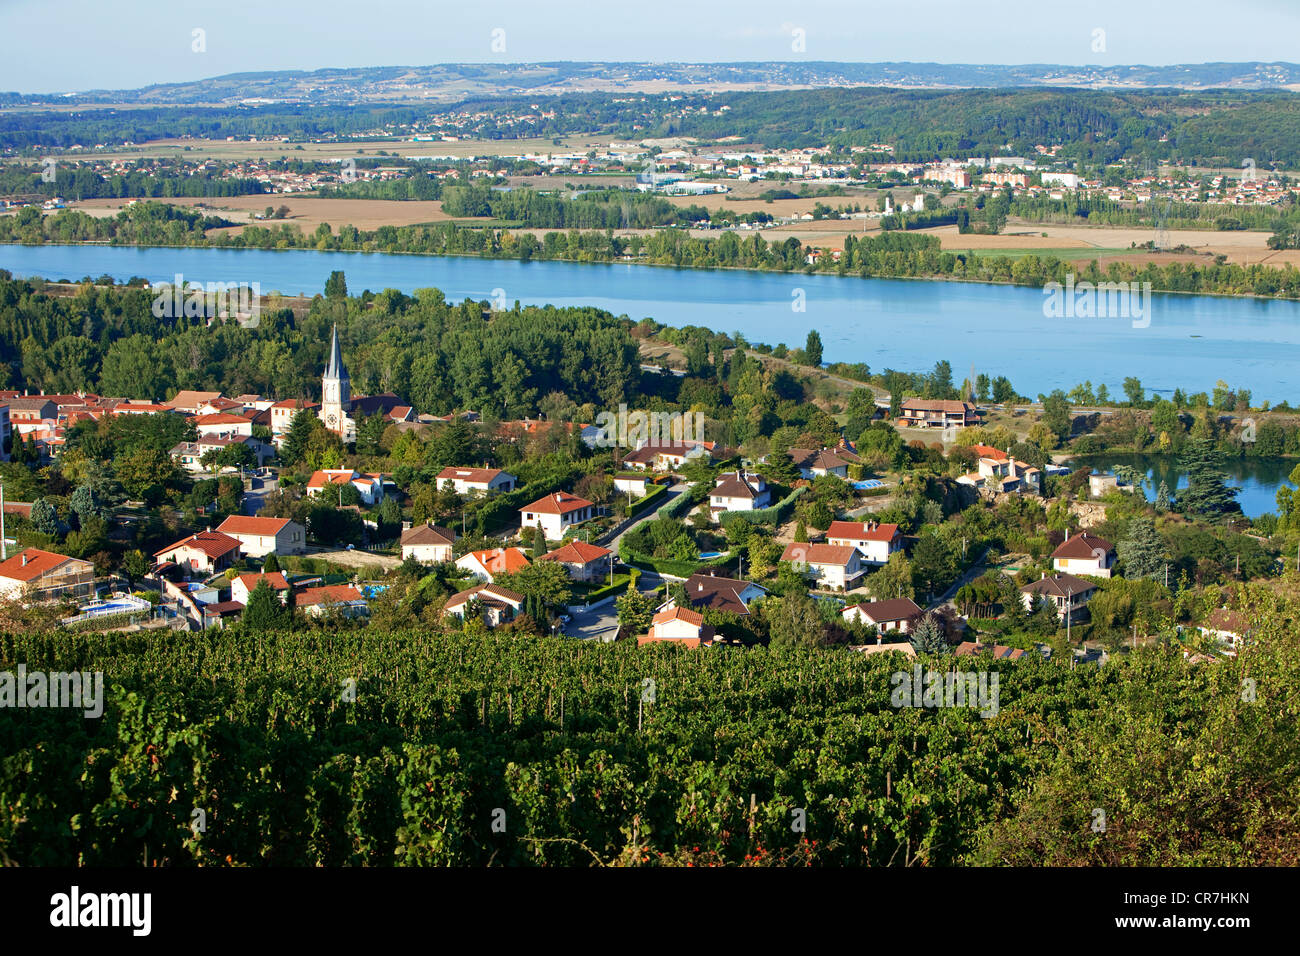 France, Loire, Saint Pierre de Boeuf, the Rhone river and the Condrieu designation vineyard - Stock Image